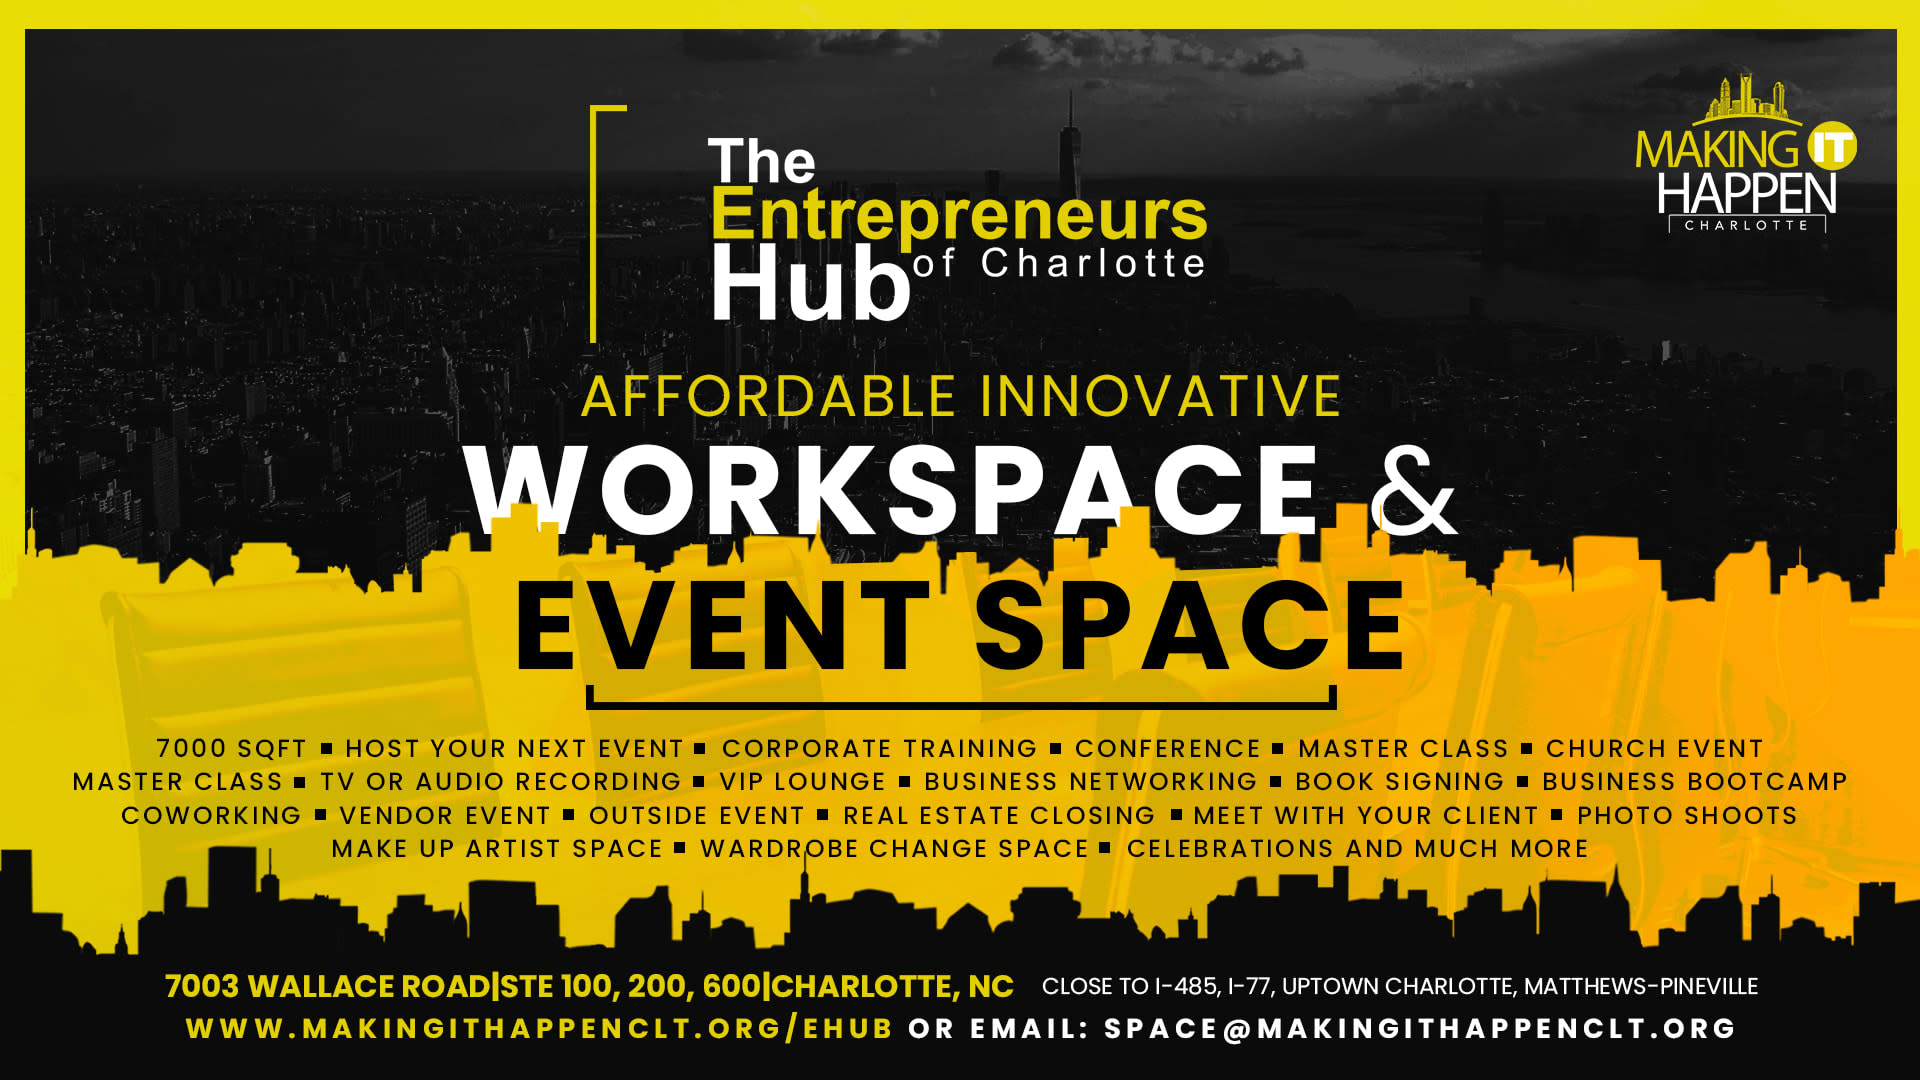 Workspace, Event Space and Meeting Space